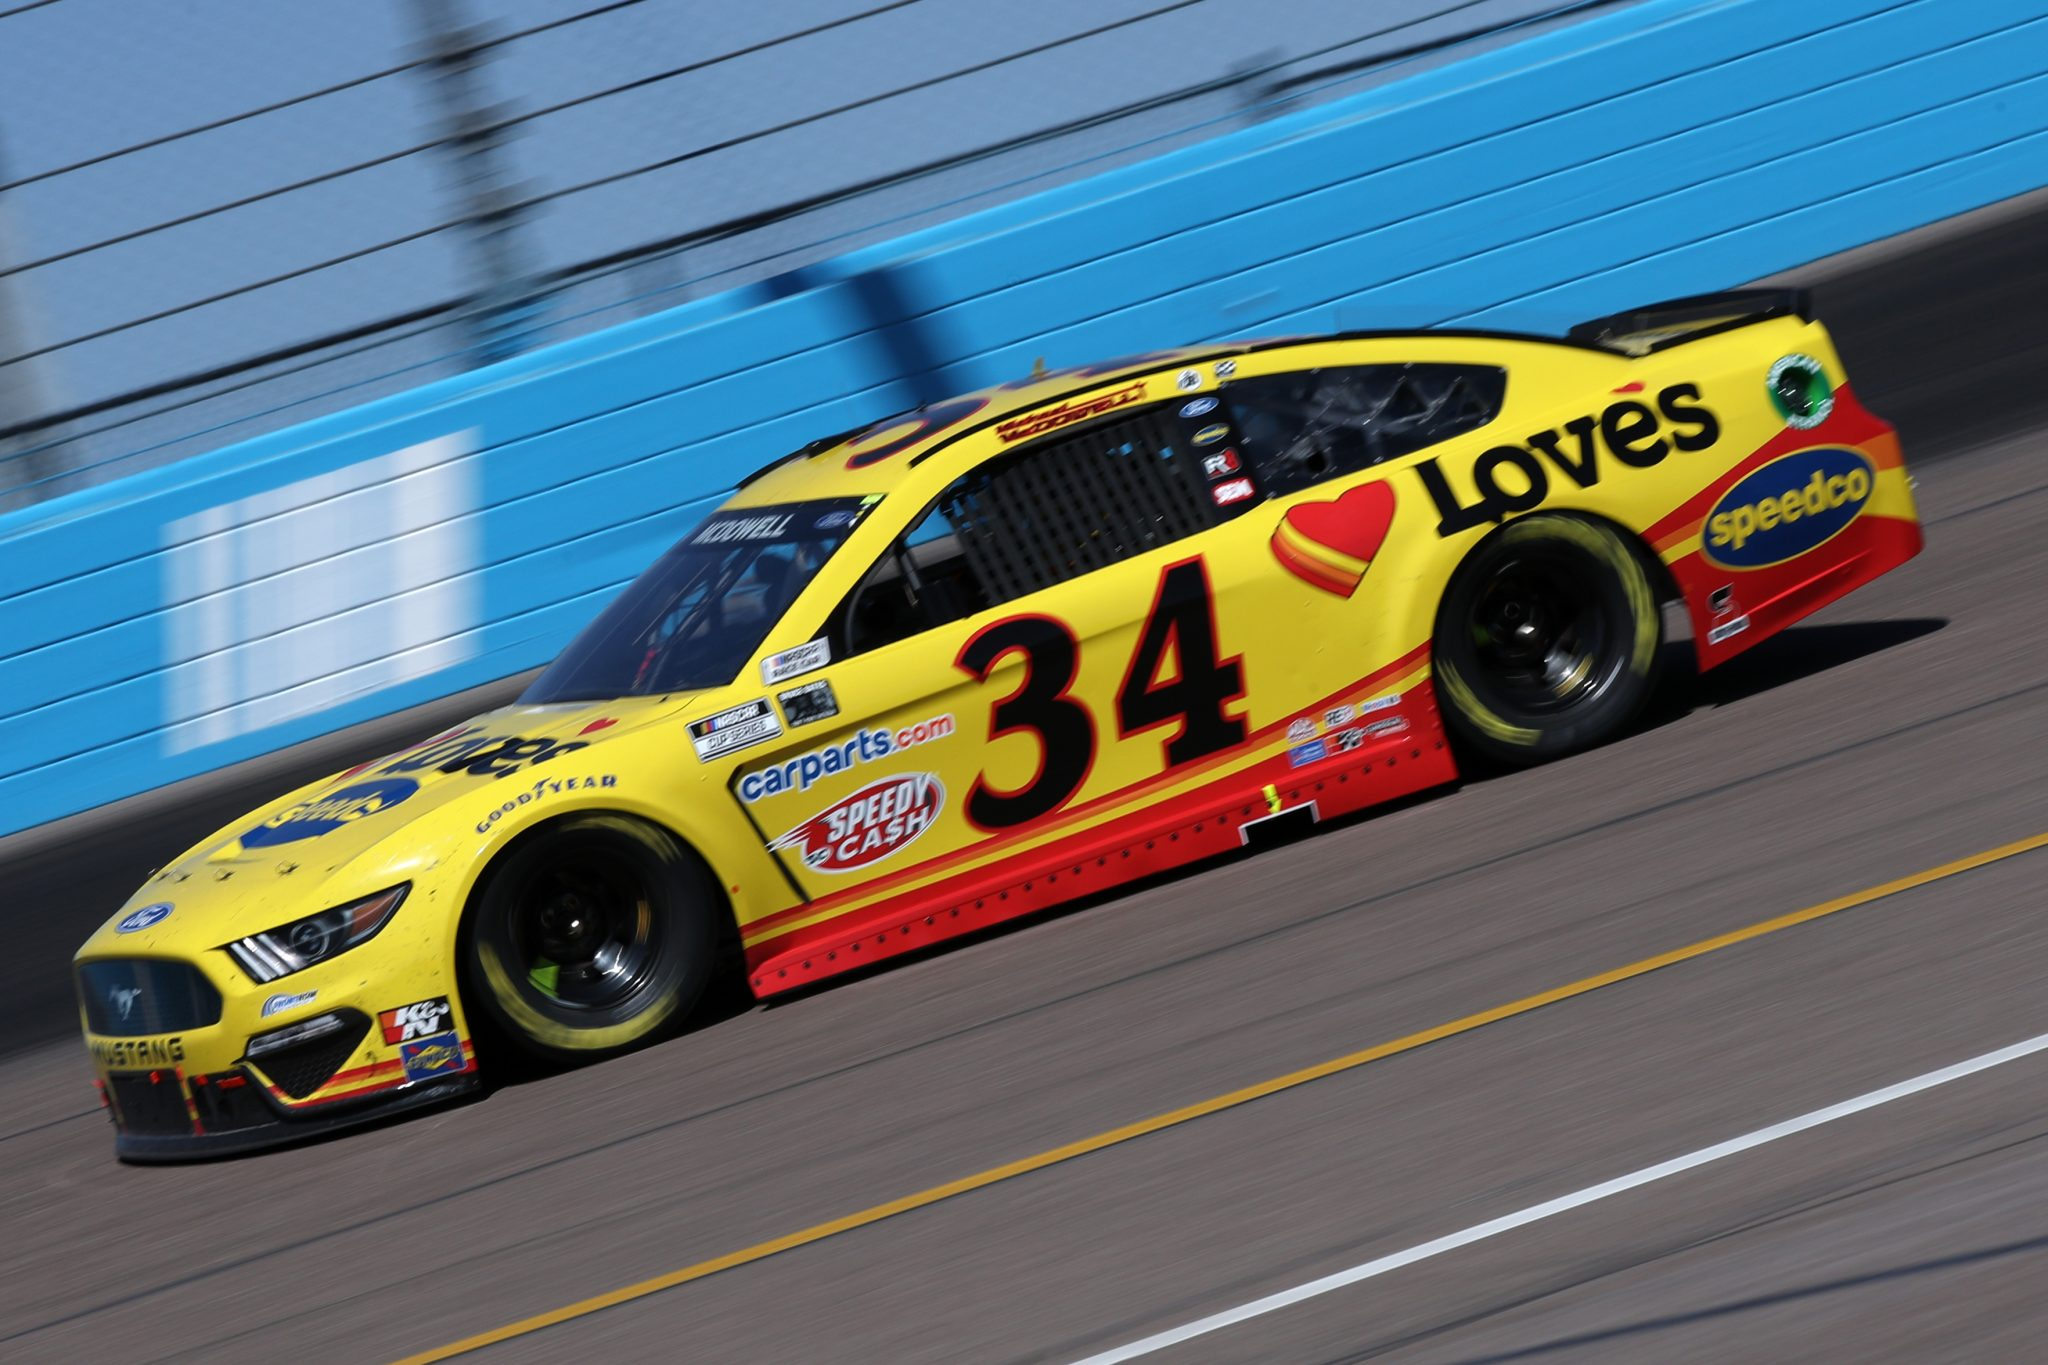 AVONDALE, ARIZONA - MARCH 14: Michael McDowell, driver of the #34 Love's Travel Stops Ford, drives during the NASCAR Cup Series Instacart 500 at Phoenix Raceway on March 14, 2021 in Avondale, Arizona. (Photo by Sean Gardner/Getty Images) | Getty Images